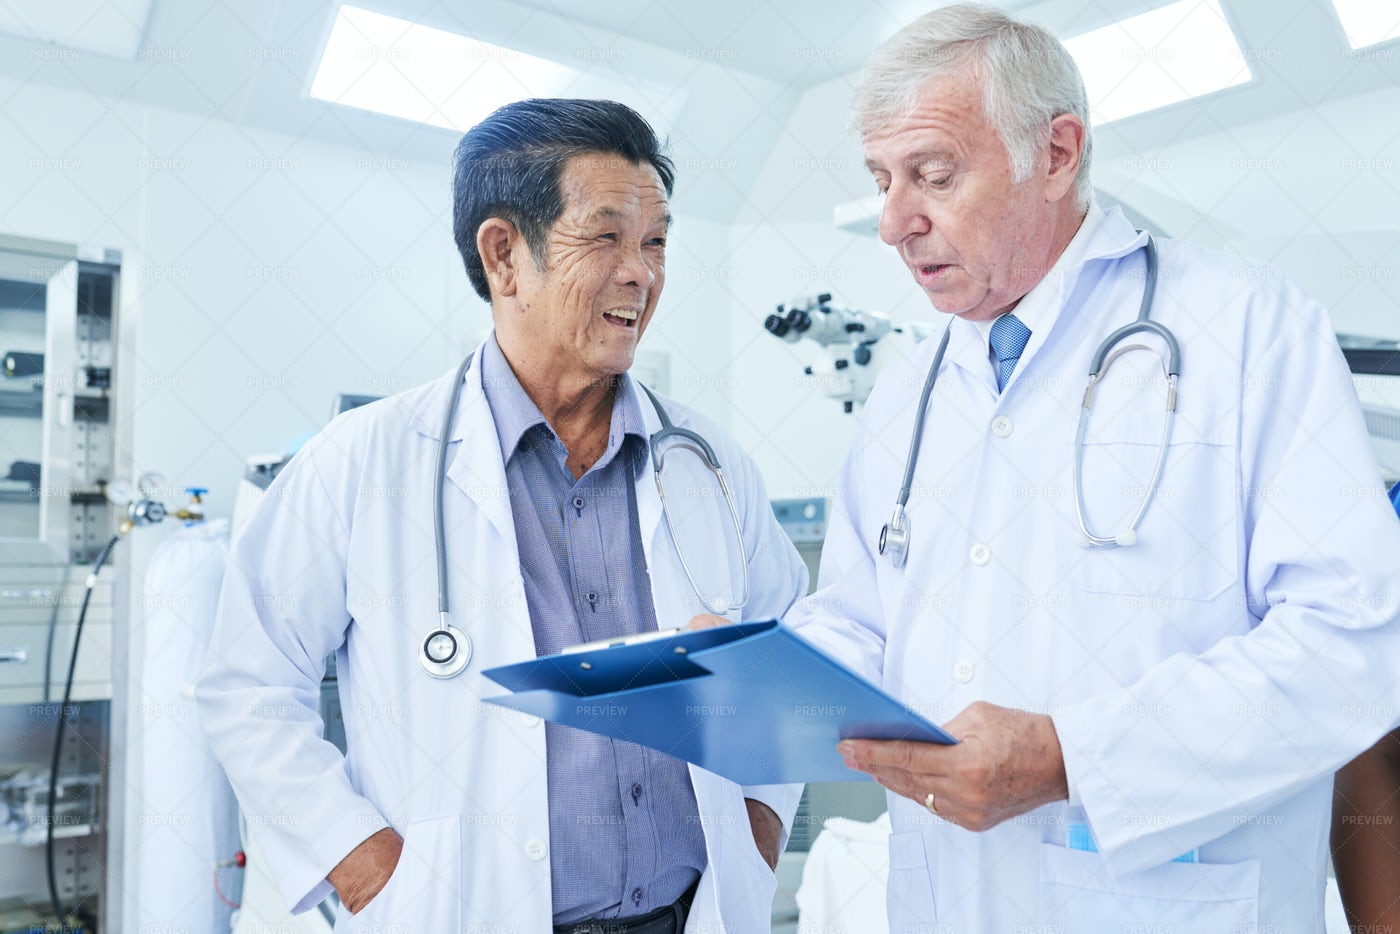 Physician Listening To Coworker: Stock Photos